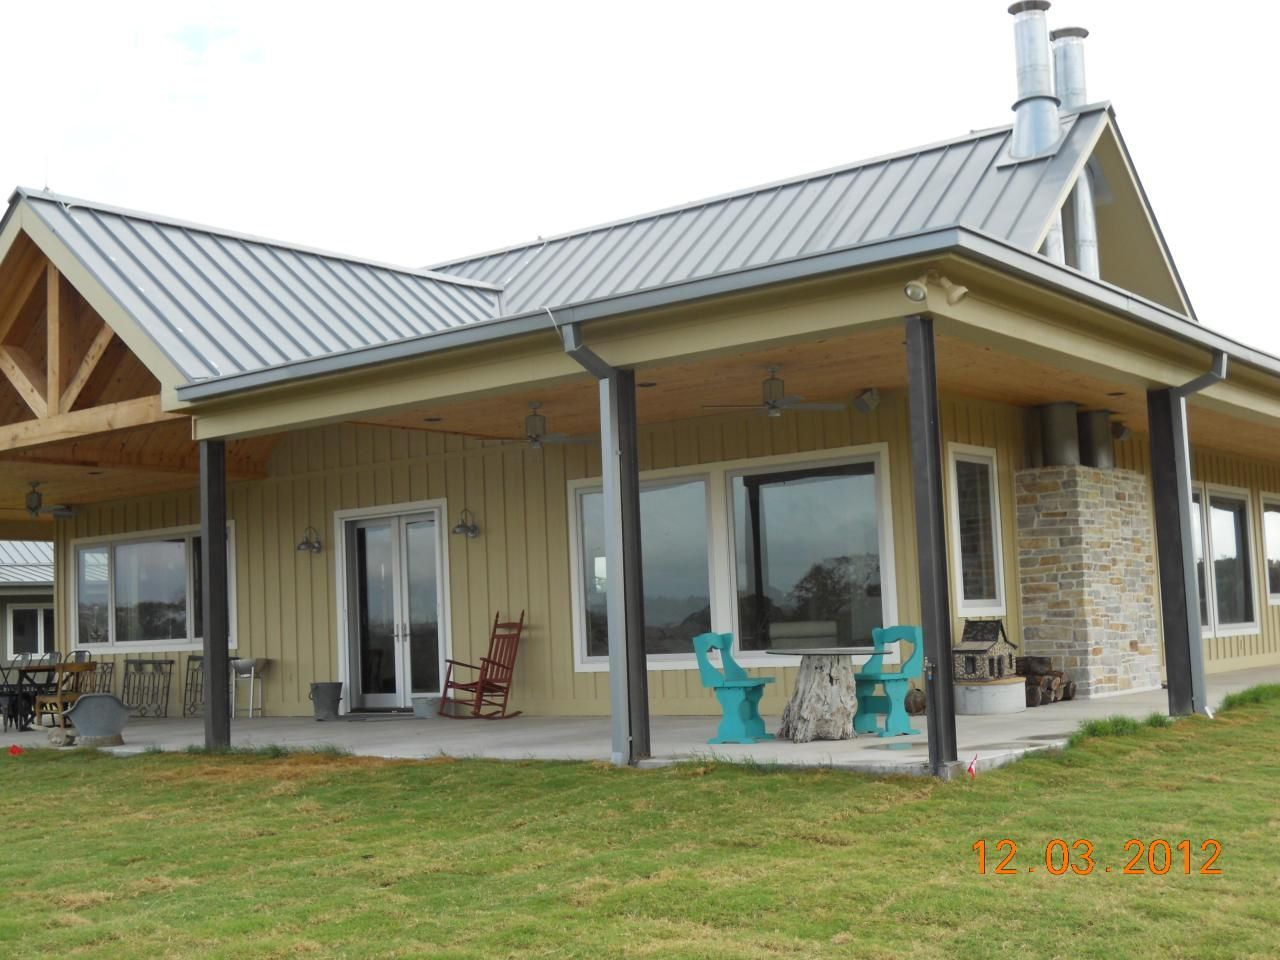 Barndominium on pinterest metal buildings metal Metal buildings house plans